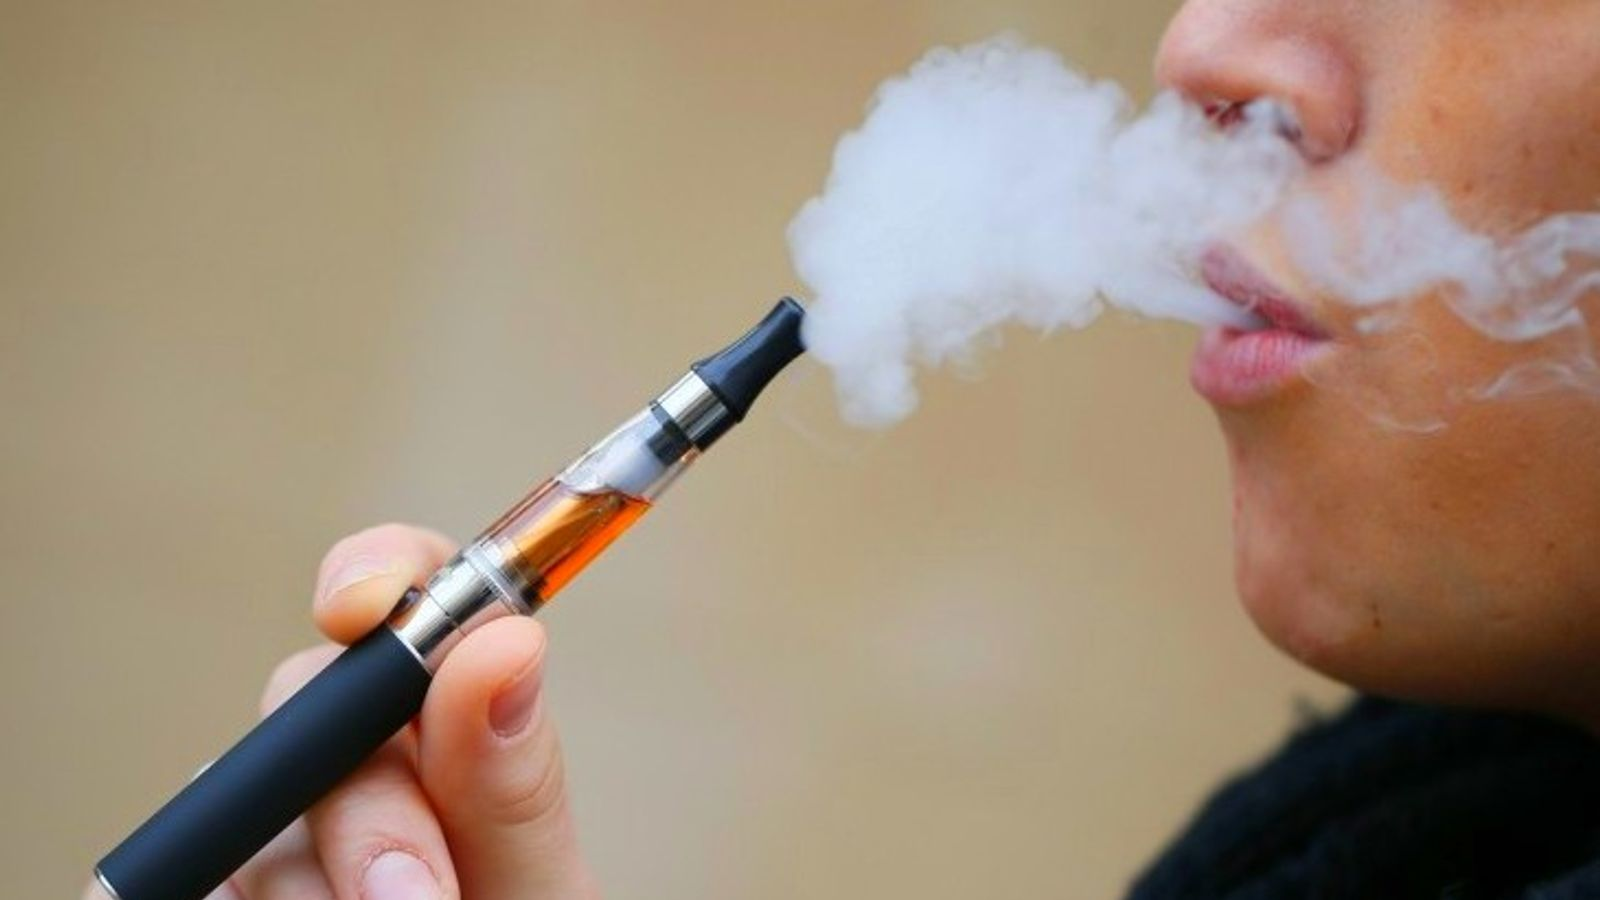 If you smoke e-cigarette, the risk of becoming a smoker increases up to 3  times, experts said; E-cigarettes are as dangerous as cigarette smoking | ई- सिगरेट पीते हैं तो स्मोकर बनने का